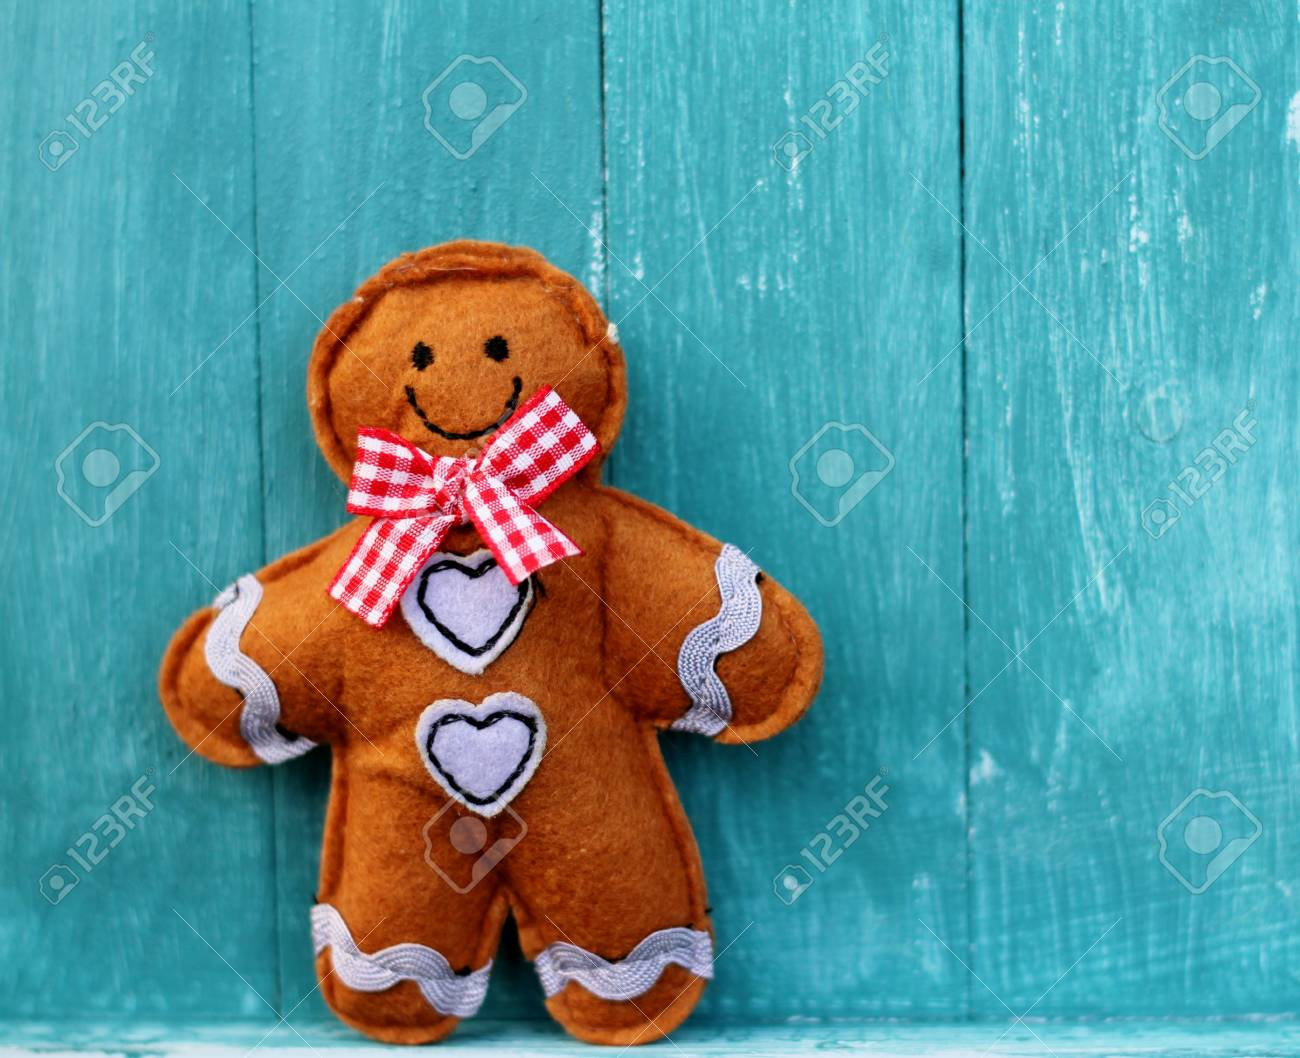 Shabby Chic Felt Ginger Bread Man On Blue Painted Wooden Boards